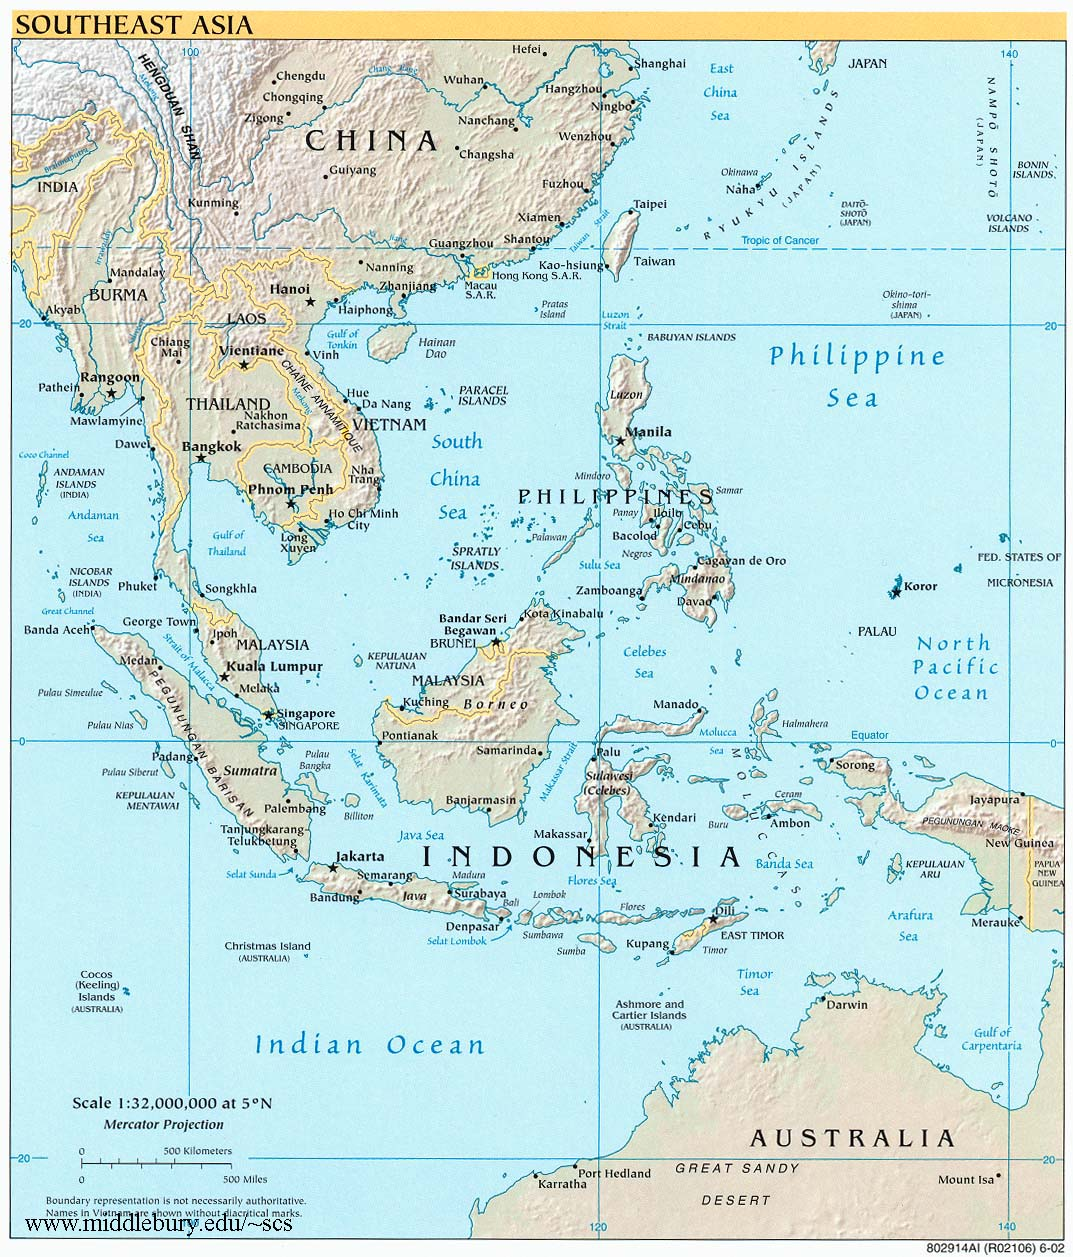 Large Map Of Asia.Southeast Asia Reference Map Cia Large The South China Sea